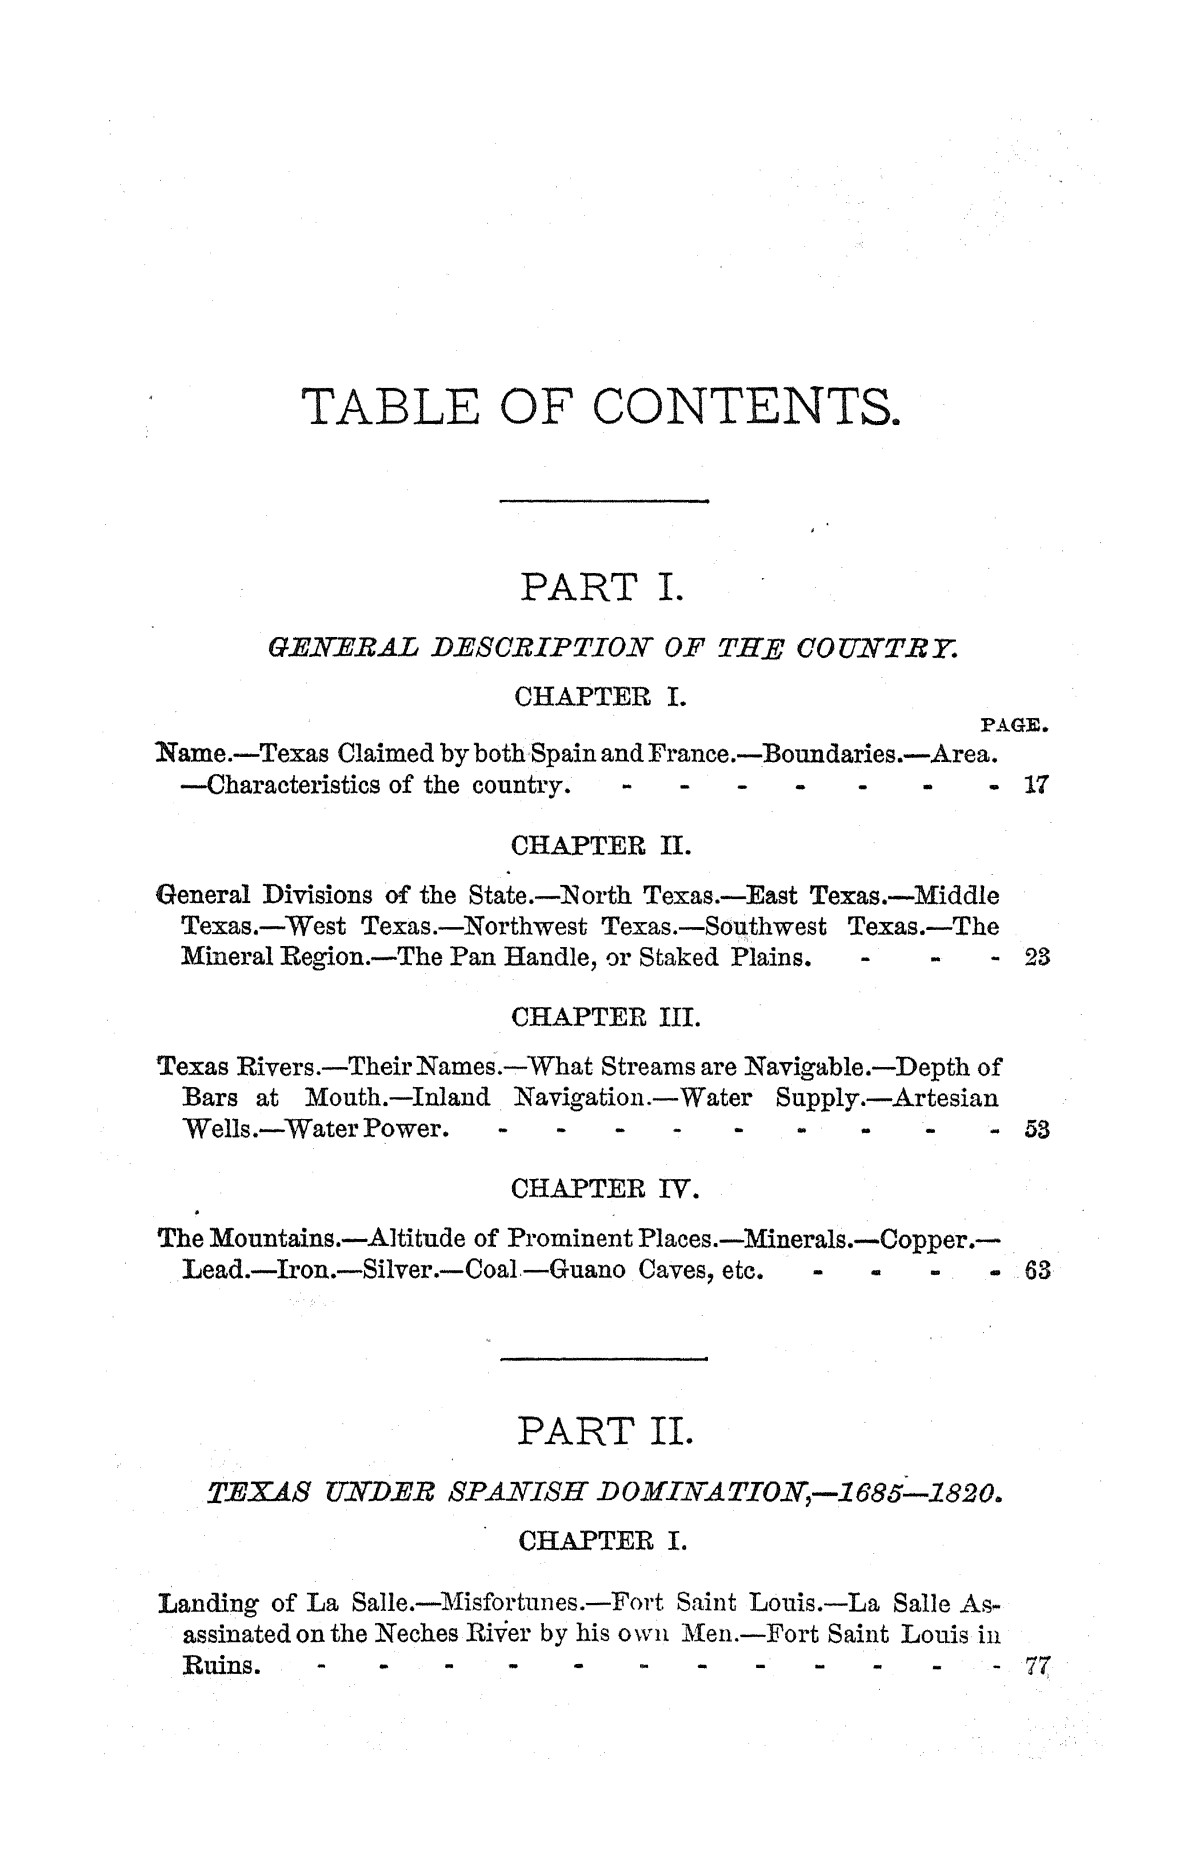 A pictorial history of Texas, from the earliest visits of European adventurers, to A.D. 1879. Embracing the periods of missions, colonization, the revolution the republic, and the state; also, a topographical description of the country ... together with its Indian tribes and their wars, and biographical sketches of hundreds of its leading historical characters. Also, a list of the countries, with historical and topical notes, and descriptions of the public institutions of the state.                                                                                                      [Sequence #]: 7 of 859